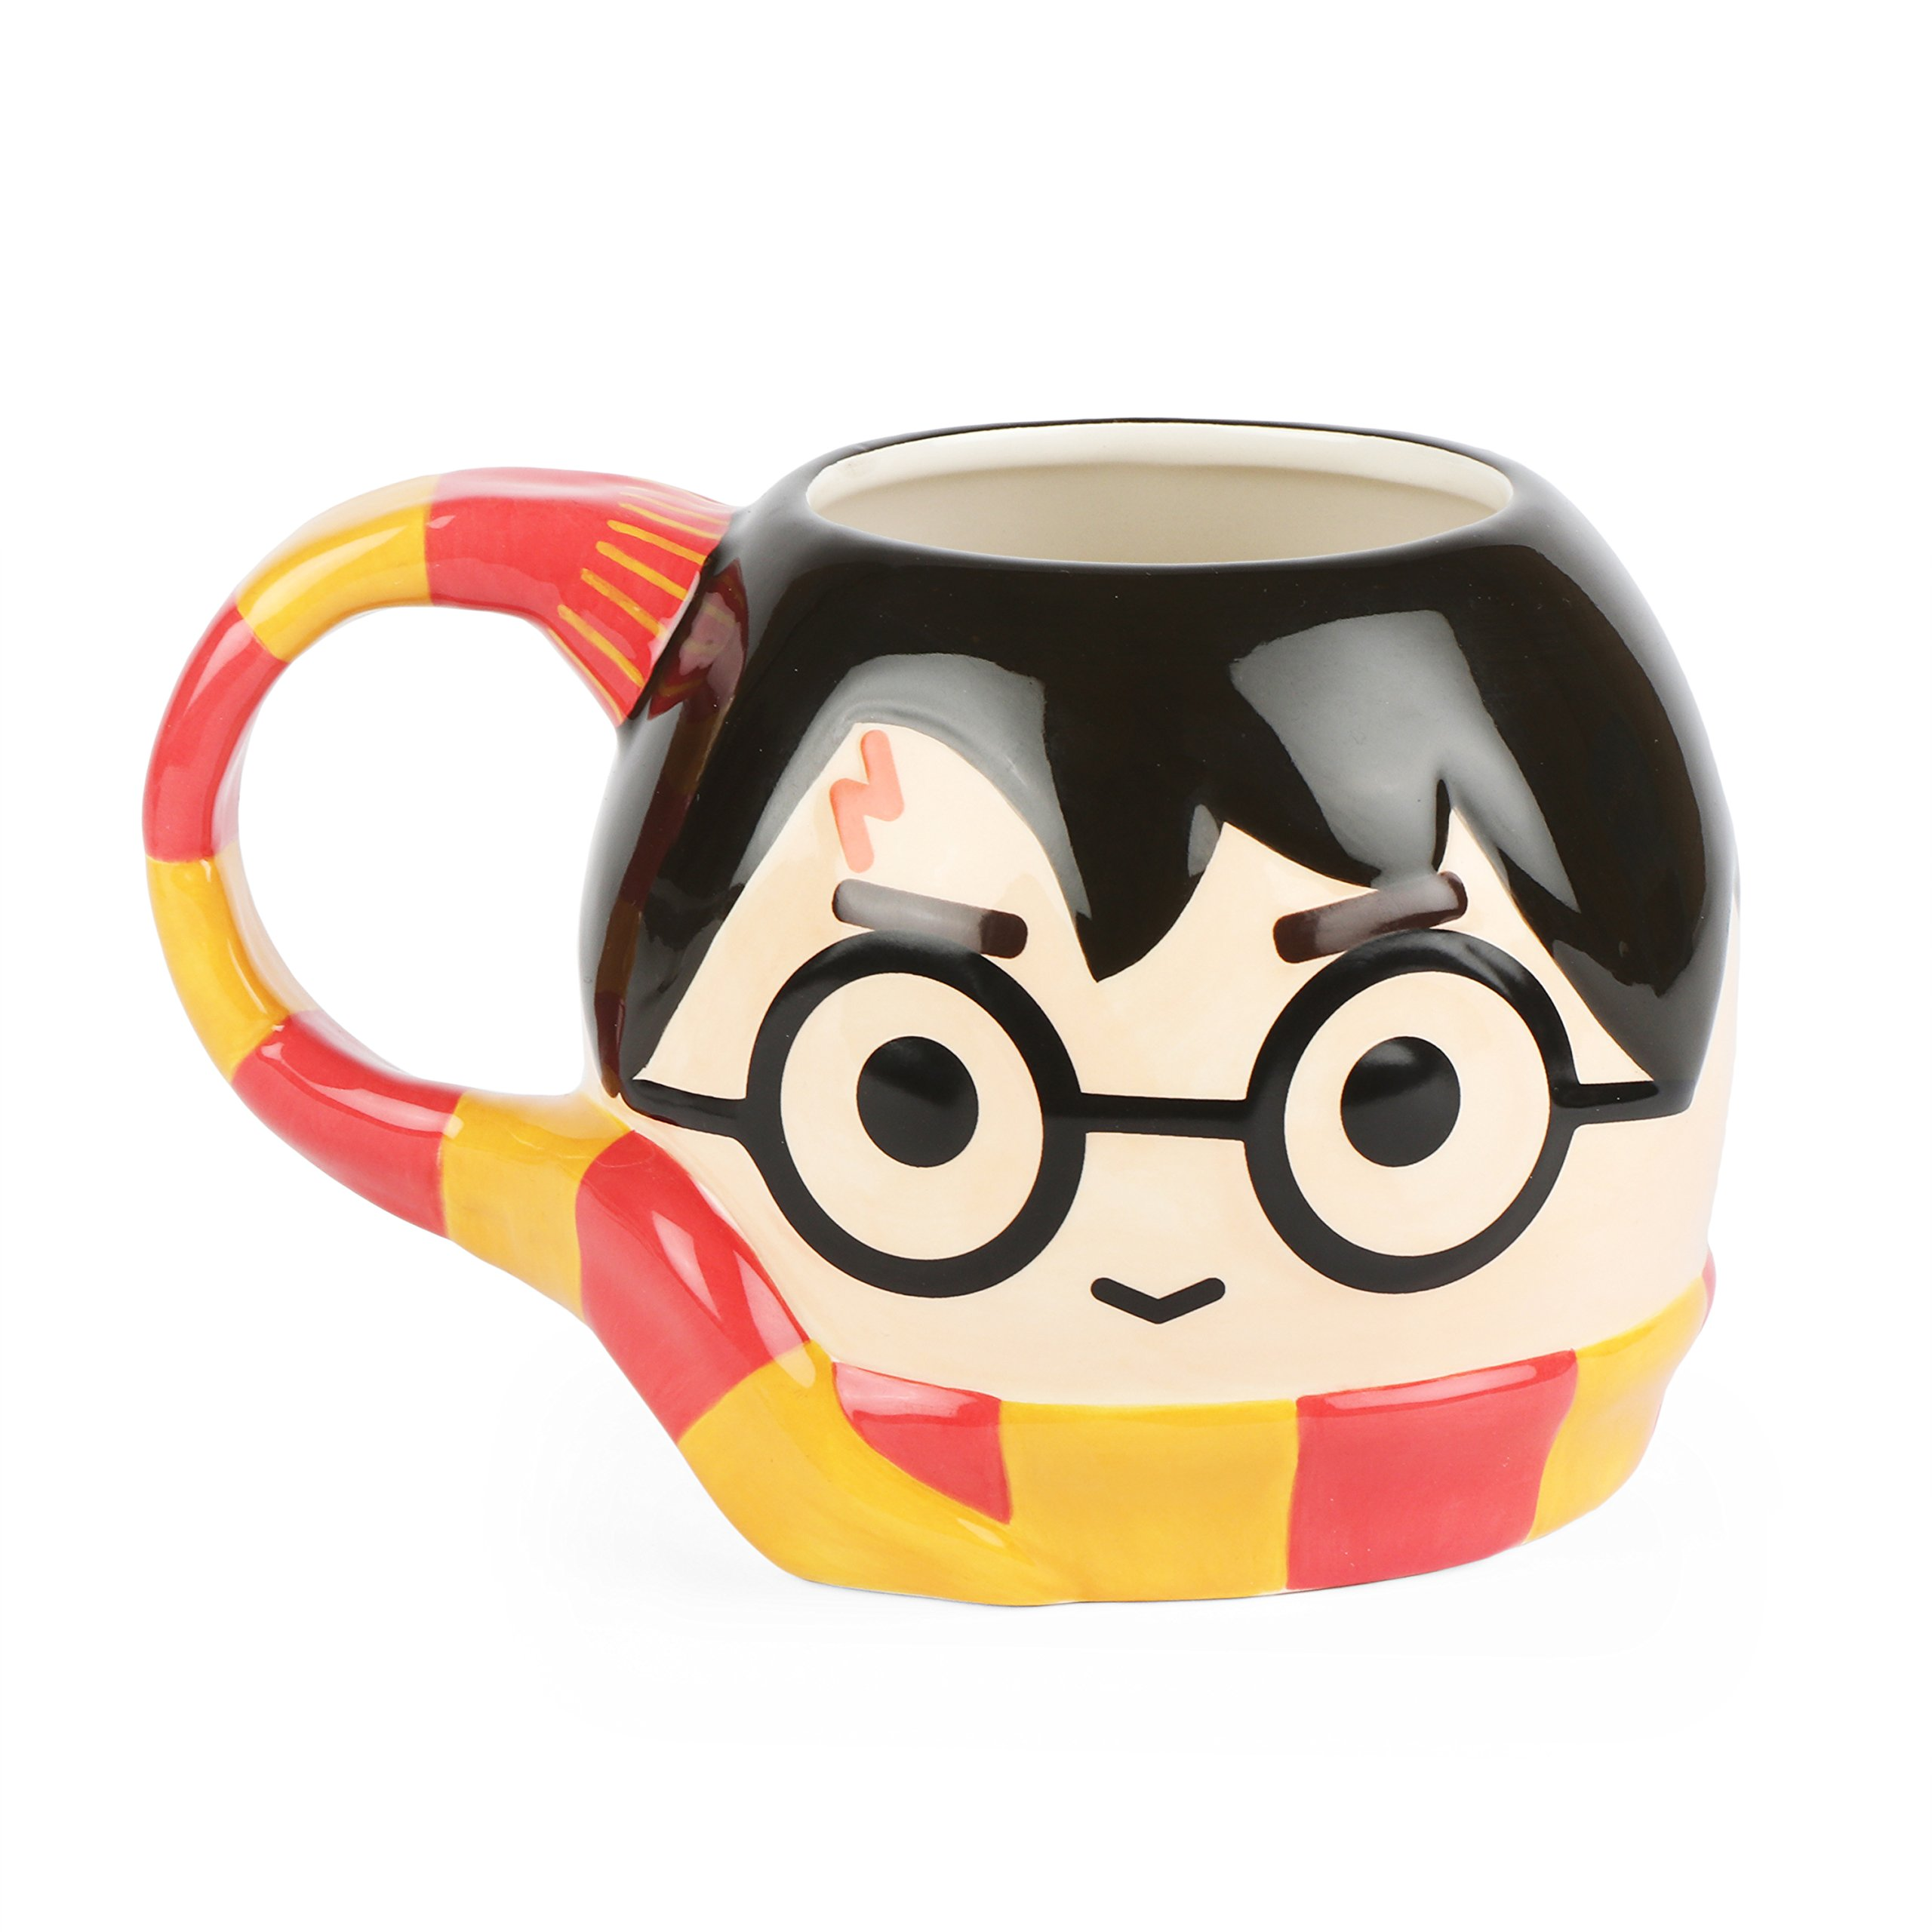 Harry Potter Sculpted Face Mug Limited Edition in Official Box